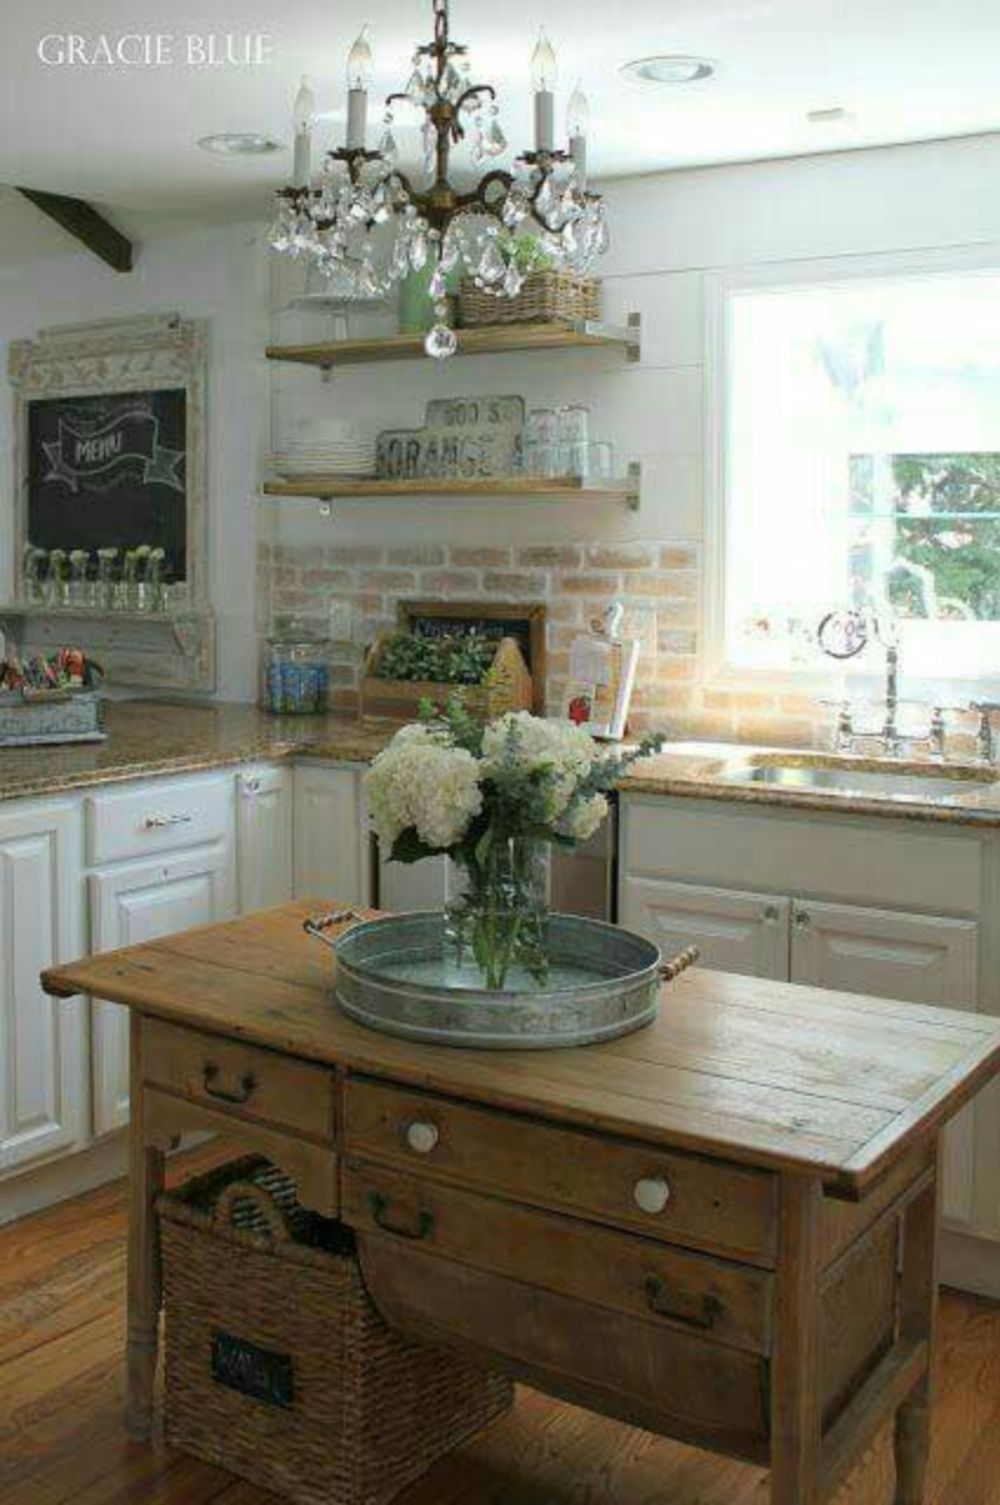 Fantastic french country decor ideas (18) - Homadein | kitchen ...